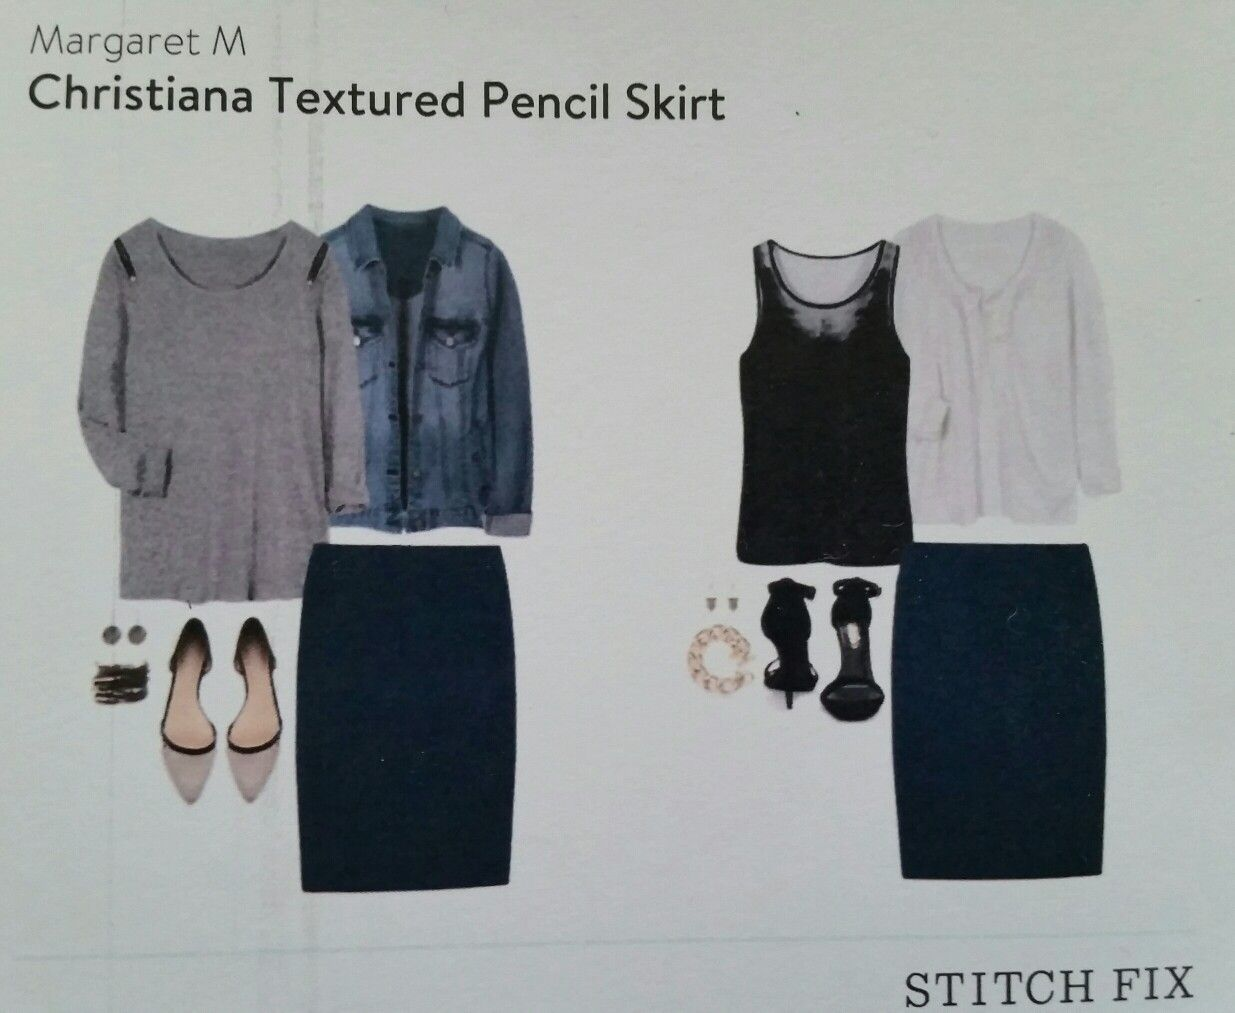 7231d88411 My 1st Stitch Fix Style Card, Margaret M Christiana Textured Pencil Skirt  Size 10p